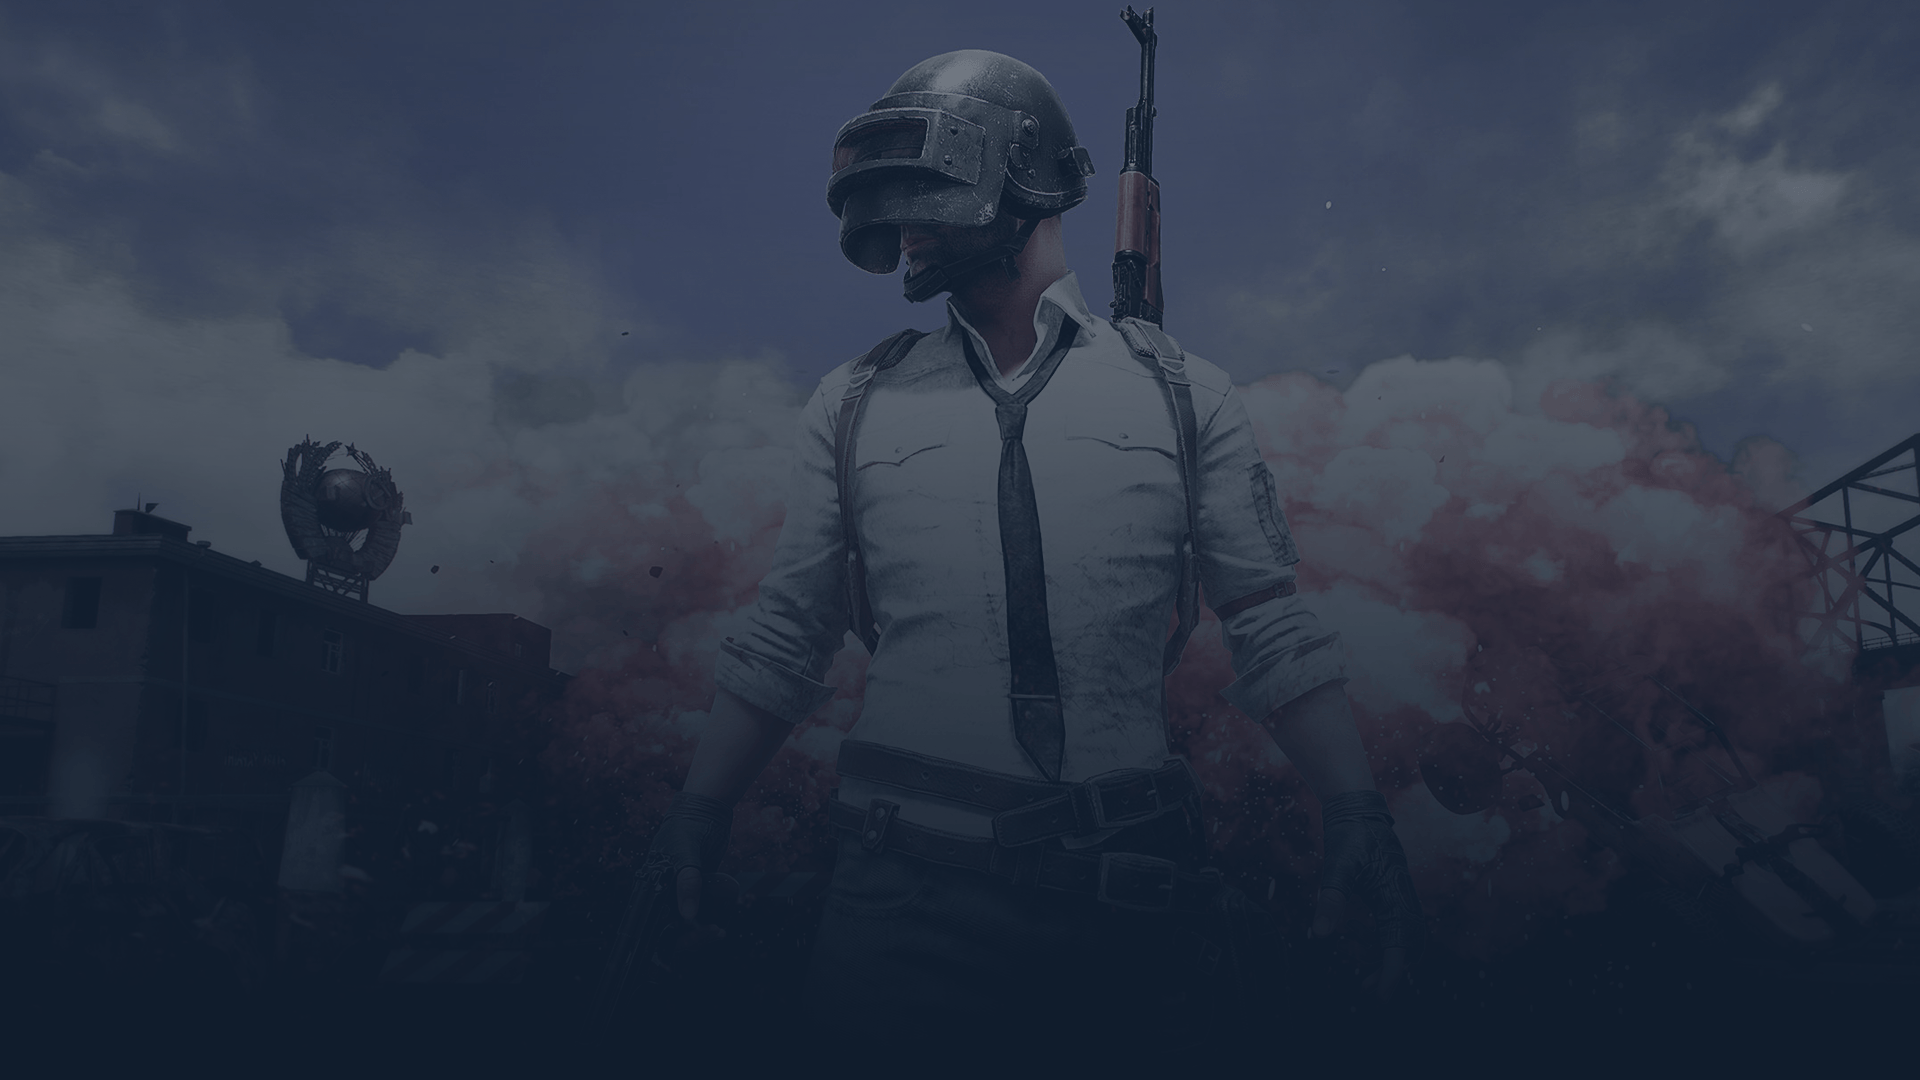 Pubg Awesome Wallpapers: PUBG Mobile Wallpapers